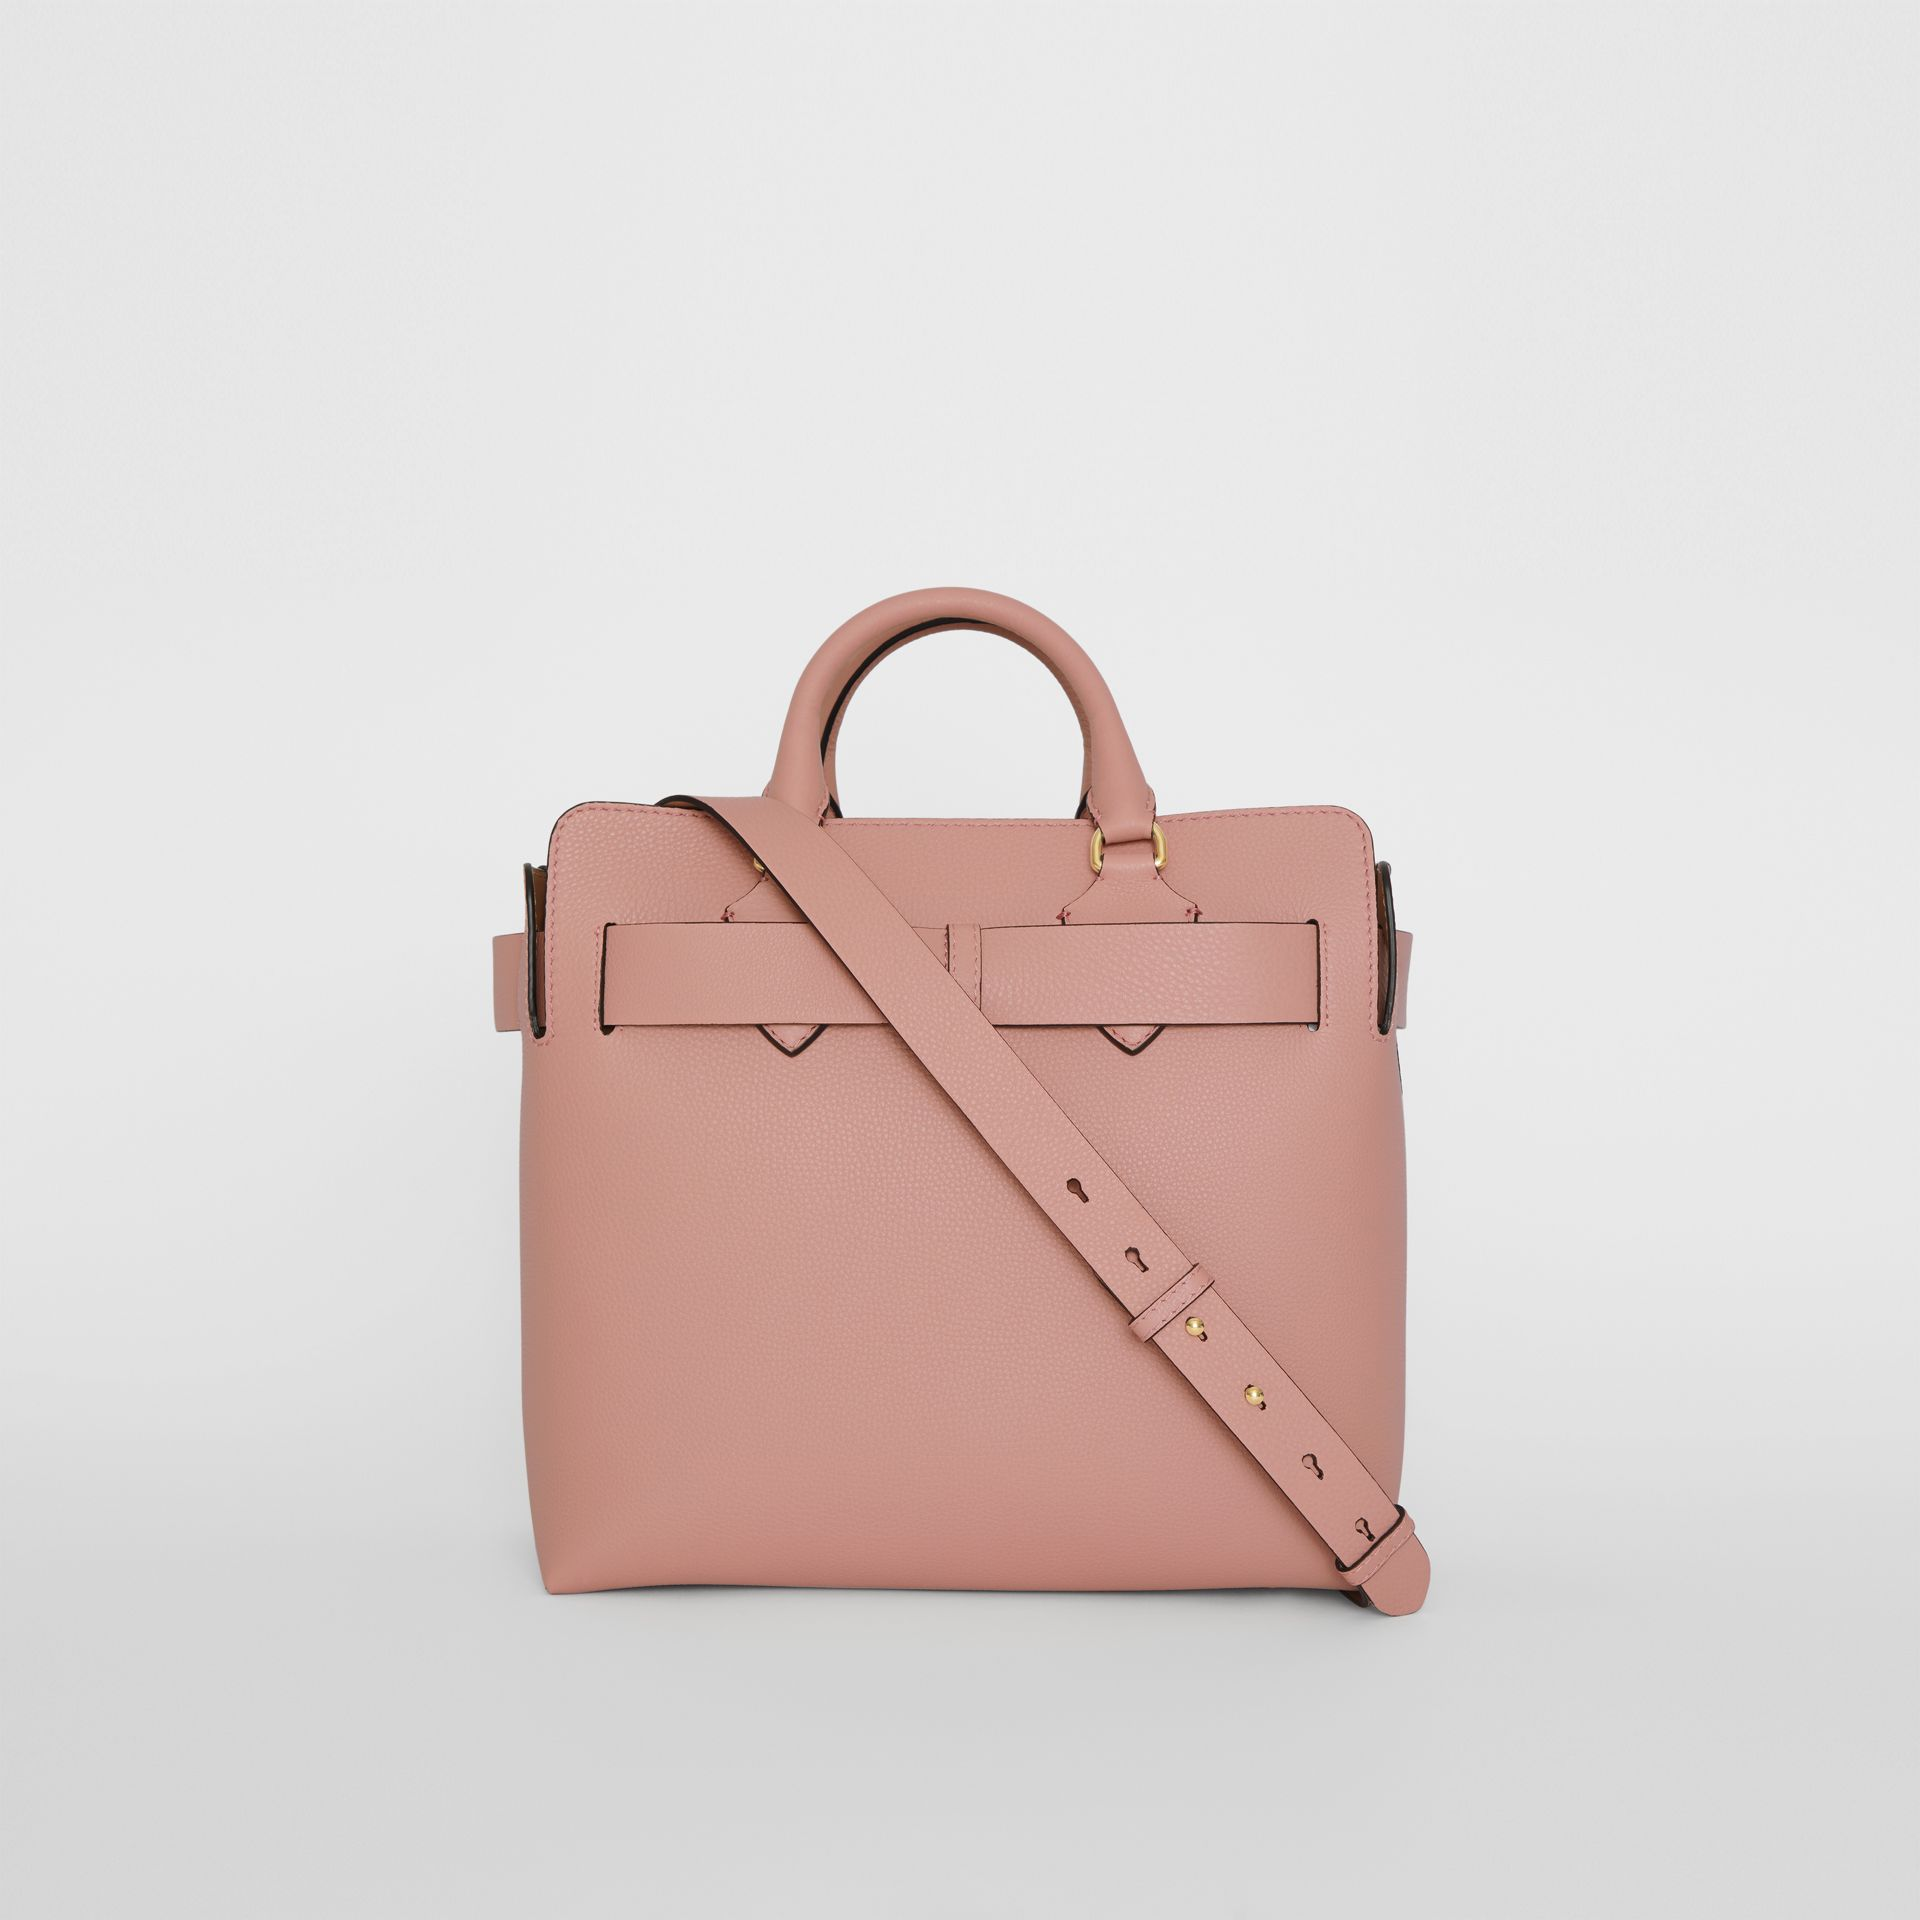 Sac The Belt moyen en cuir (Rose Platiné) - Femme | Burberry - photo de la galerie 7